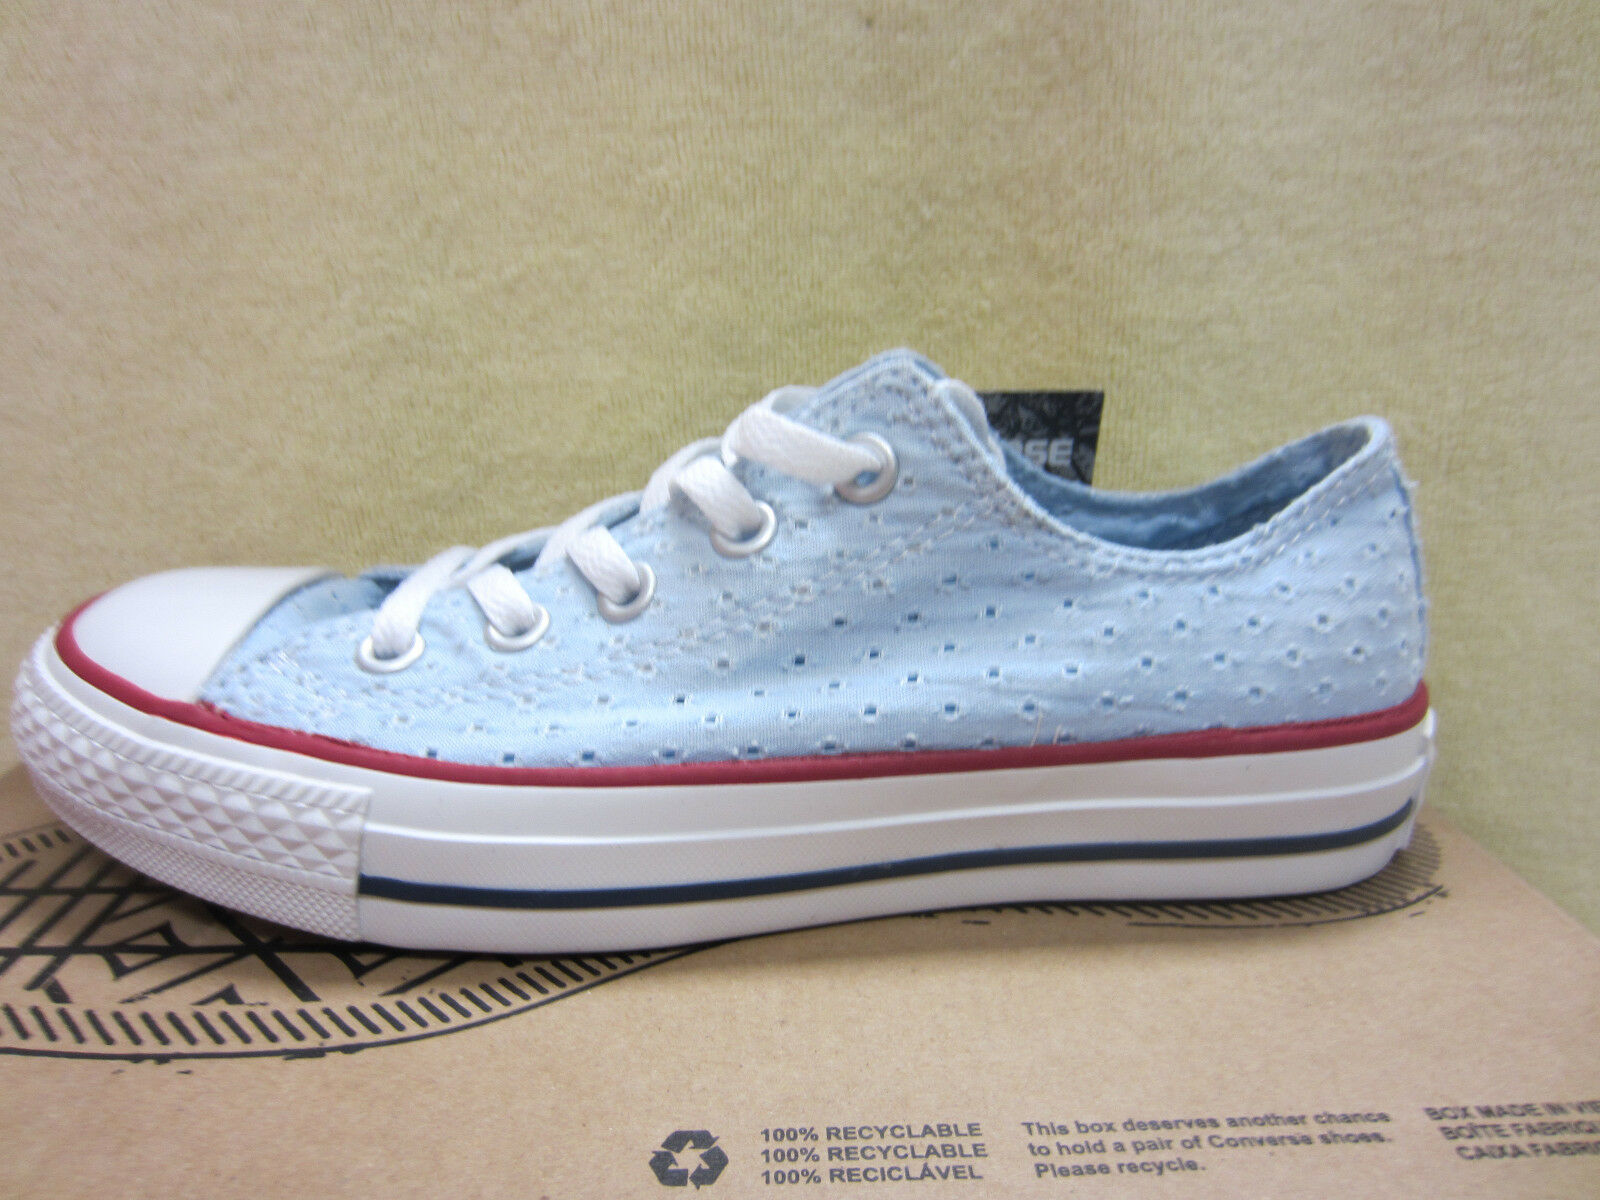 New Converse Womens CT OX Fountain blue 547694F Size 6 Athletic shoes Sneakers